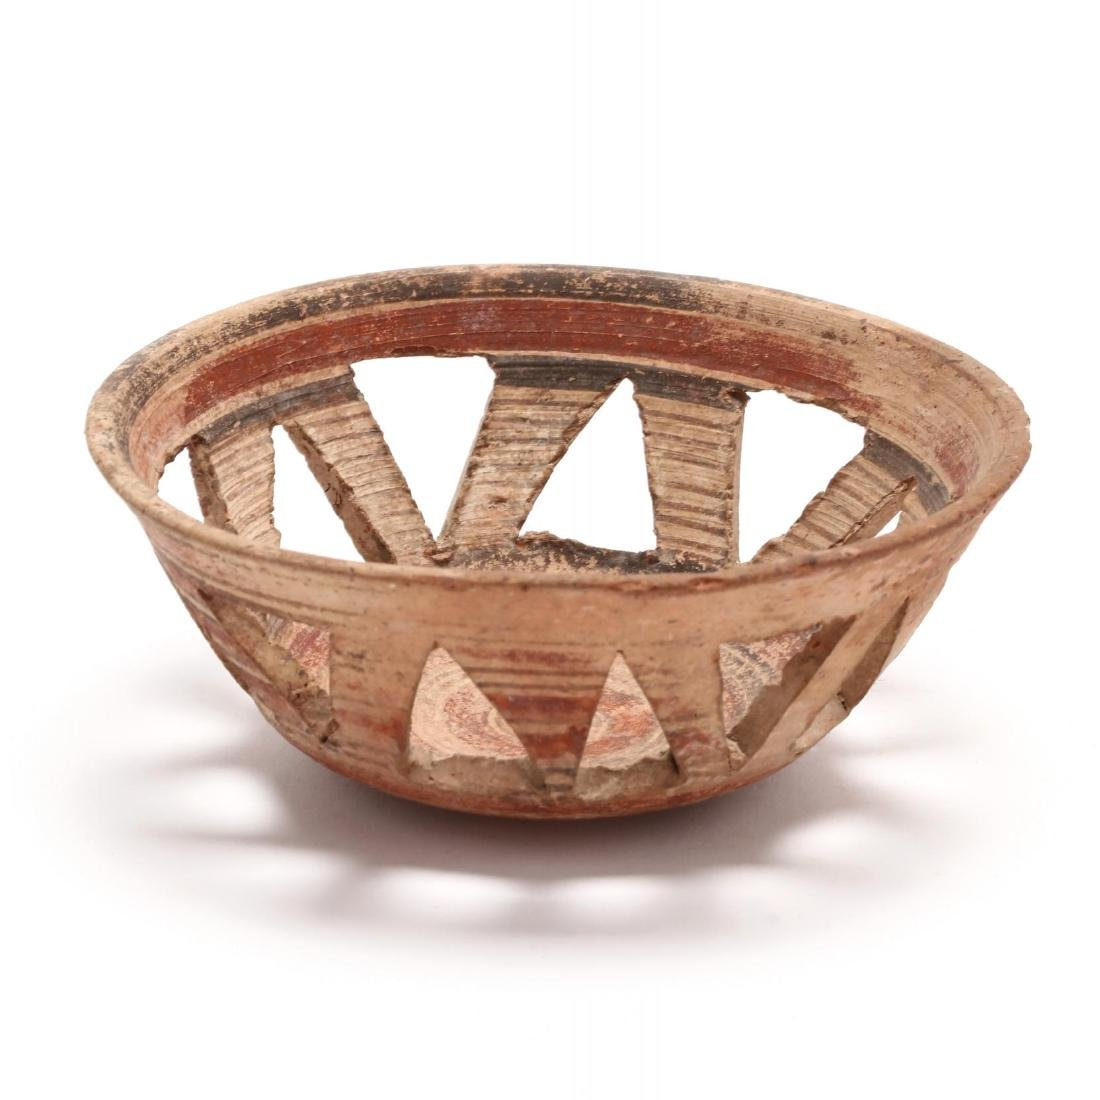 Cypro-Archaic Fenestrated Bowl